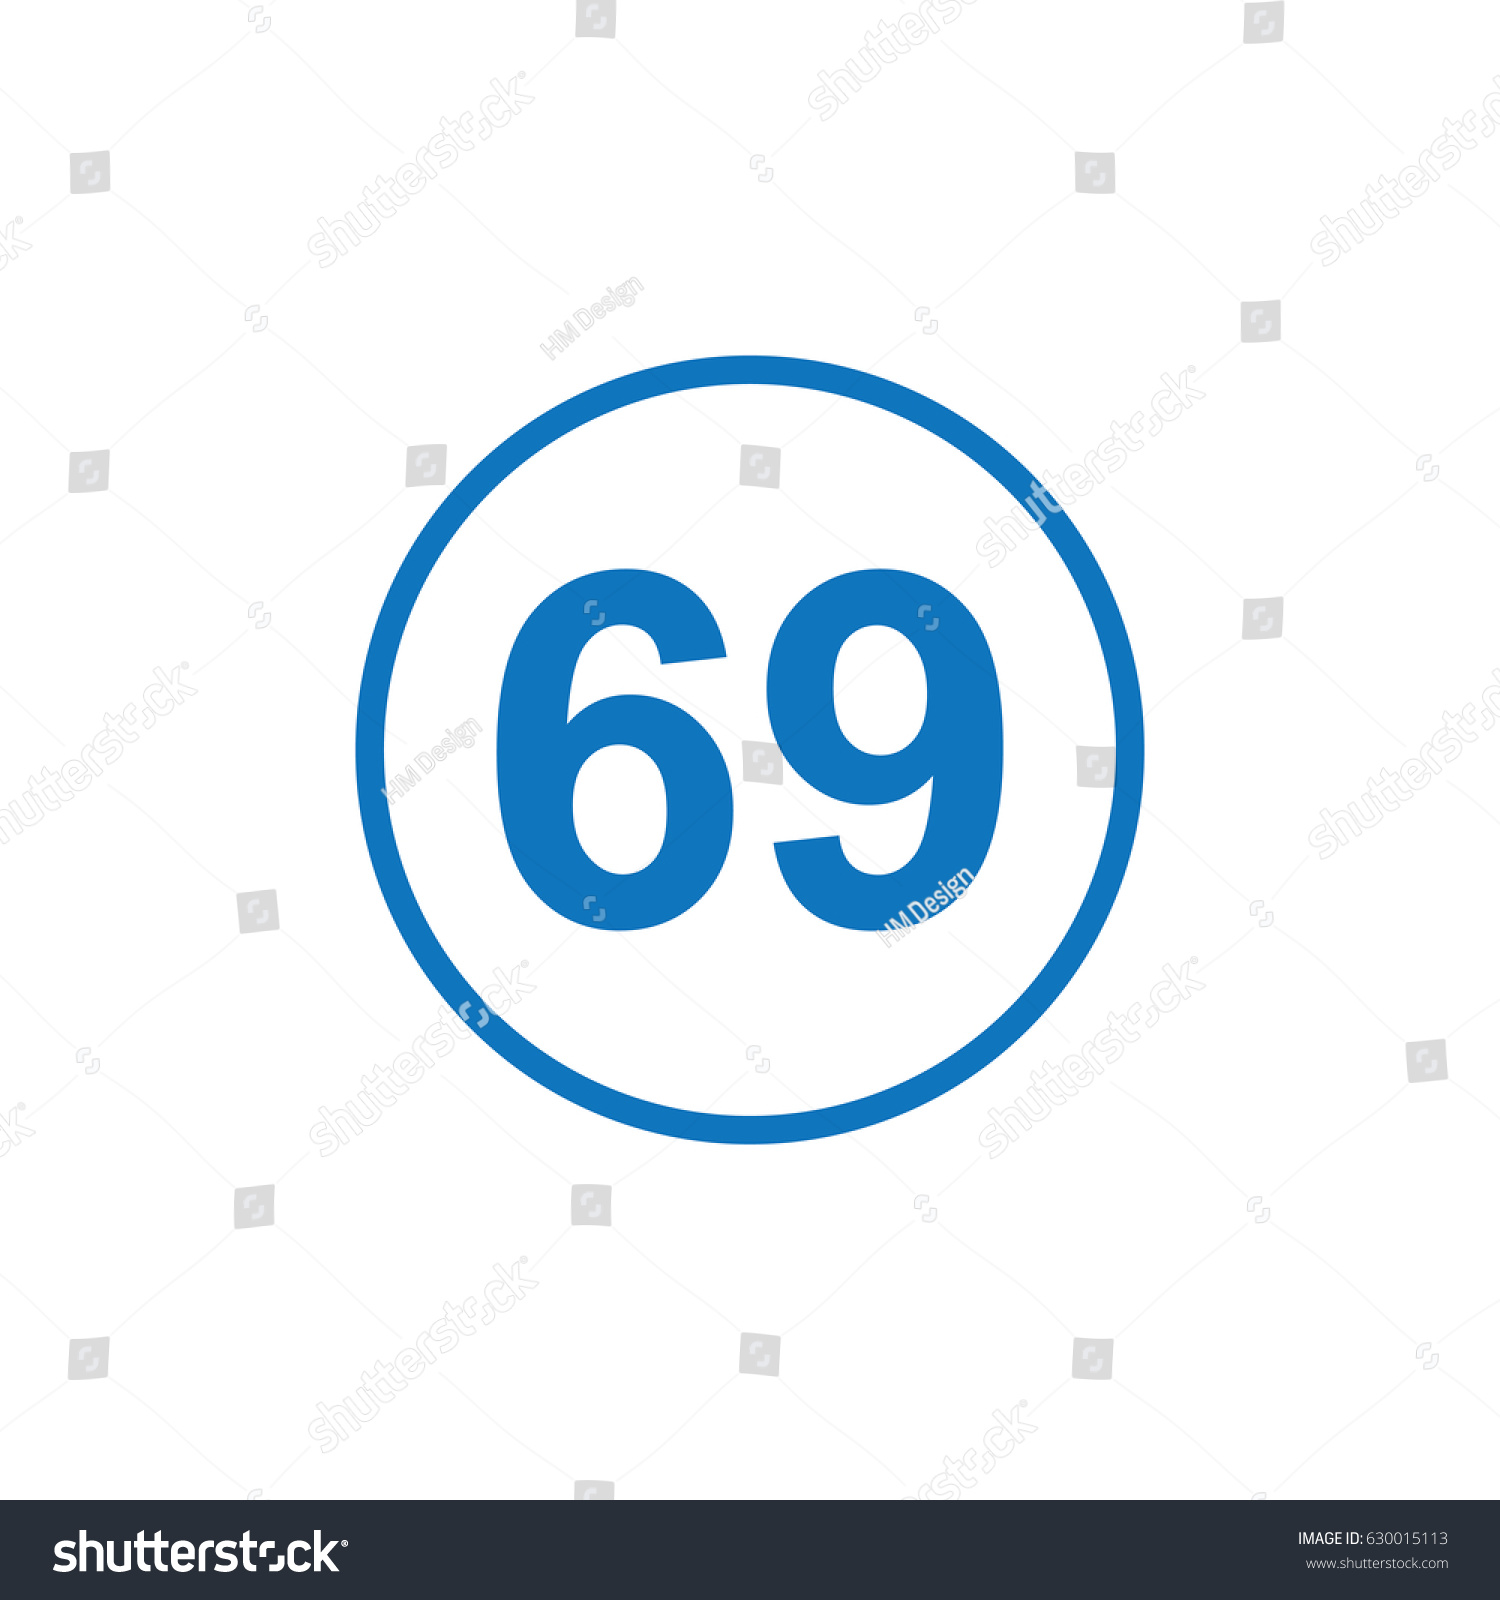 Number 69 Icon Illustration Isolated Vector Stock Vector Royalty